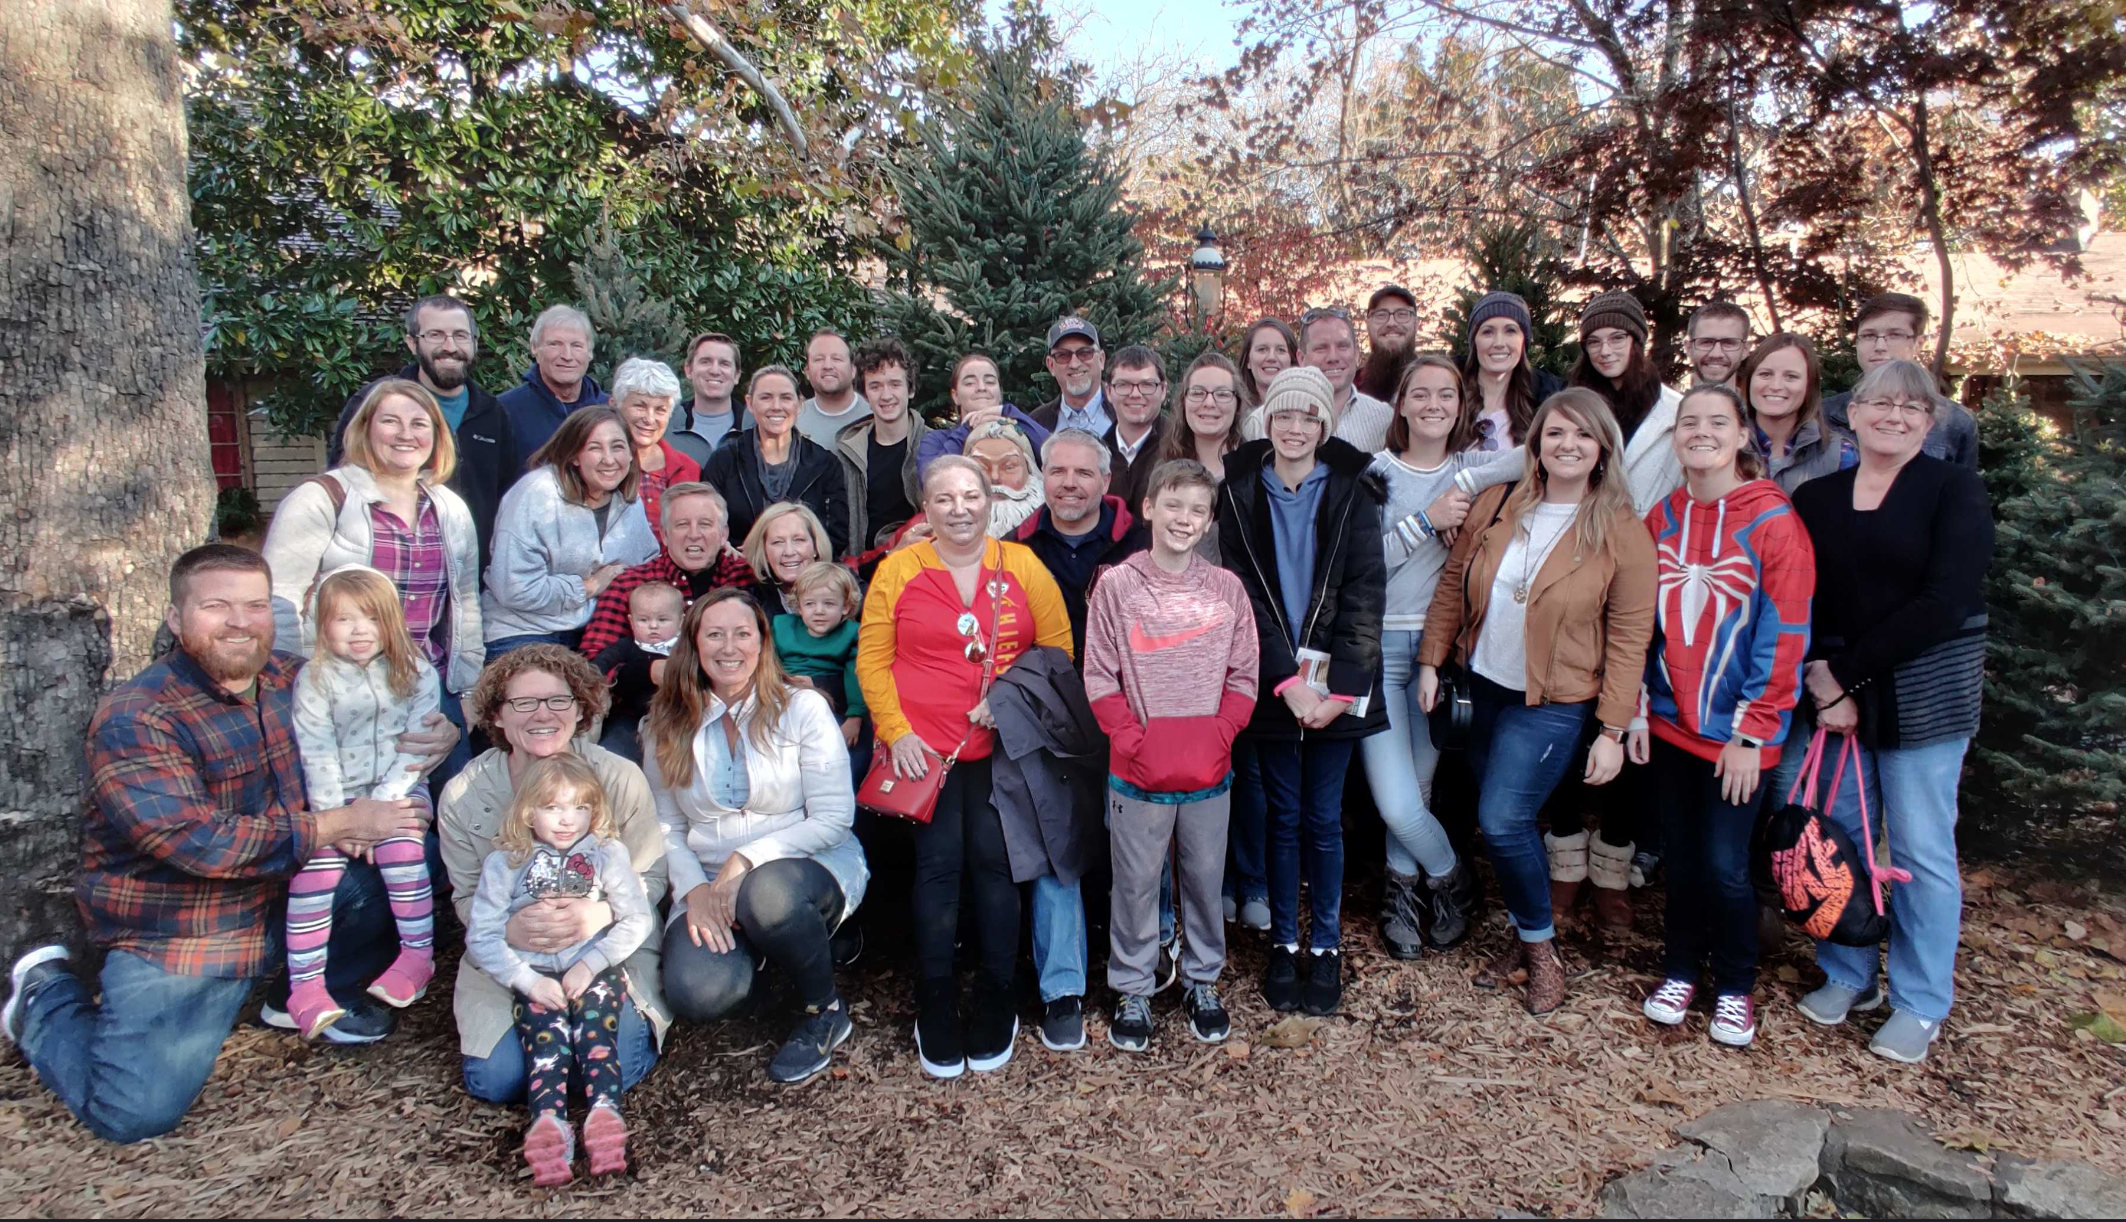 Family members of Sapp Design Architects group photo outdoors in winter